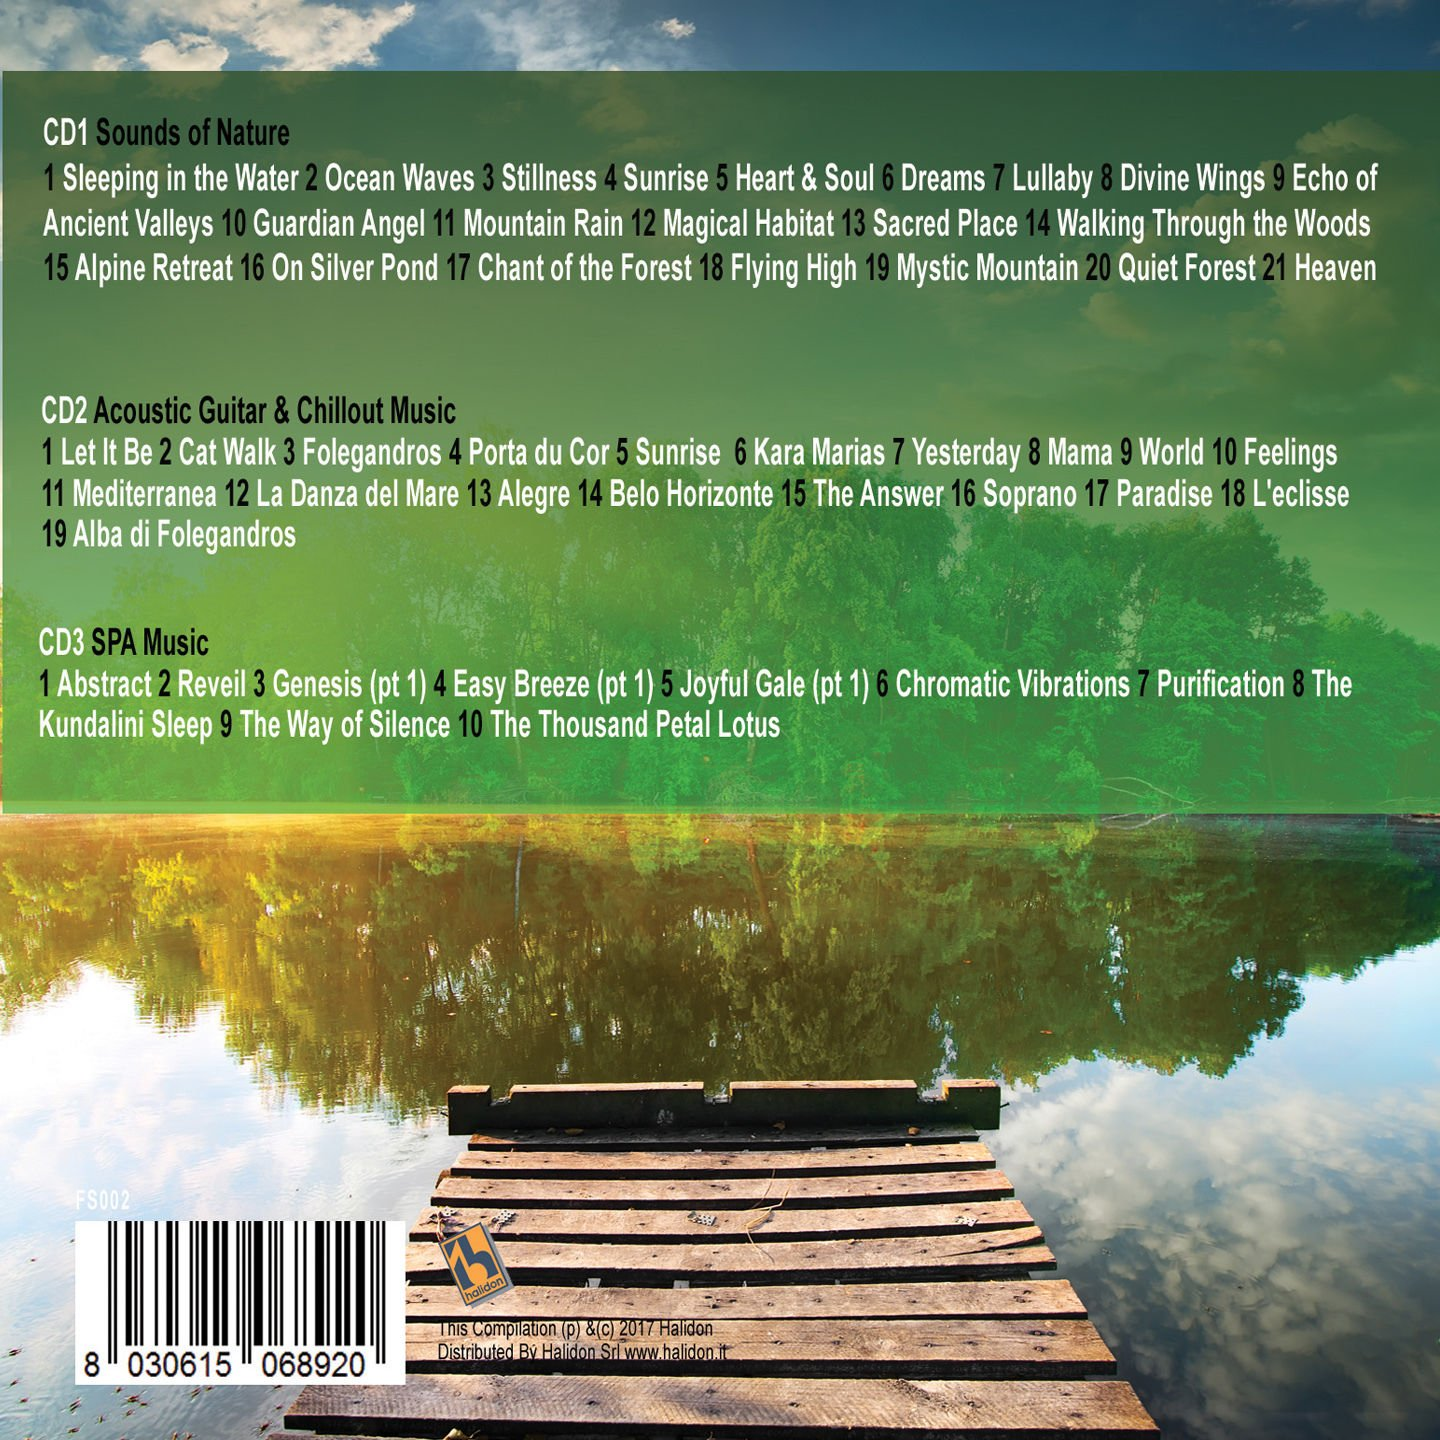 3CD 50 Songs Relax, Musica Rilassante, Peaceful, Wellness Relax, Lounge  Music, Relaxing, Meditation, Sound Of Nature, Acoustic Guitar, Chillout  Music,